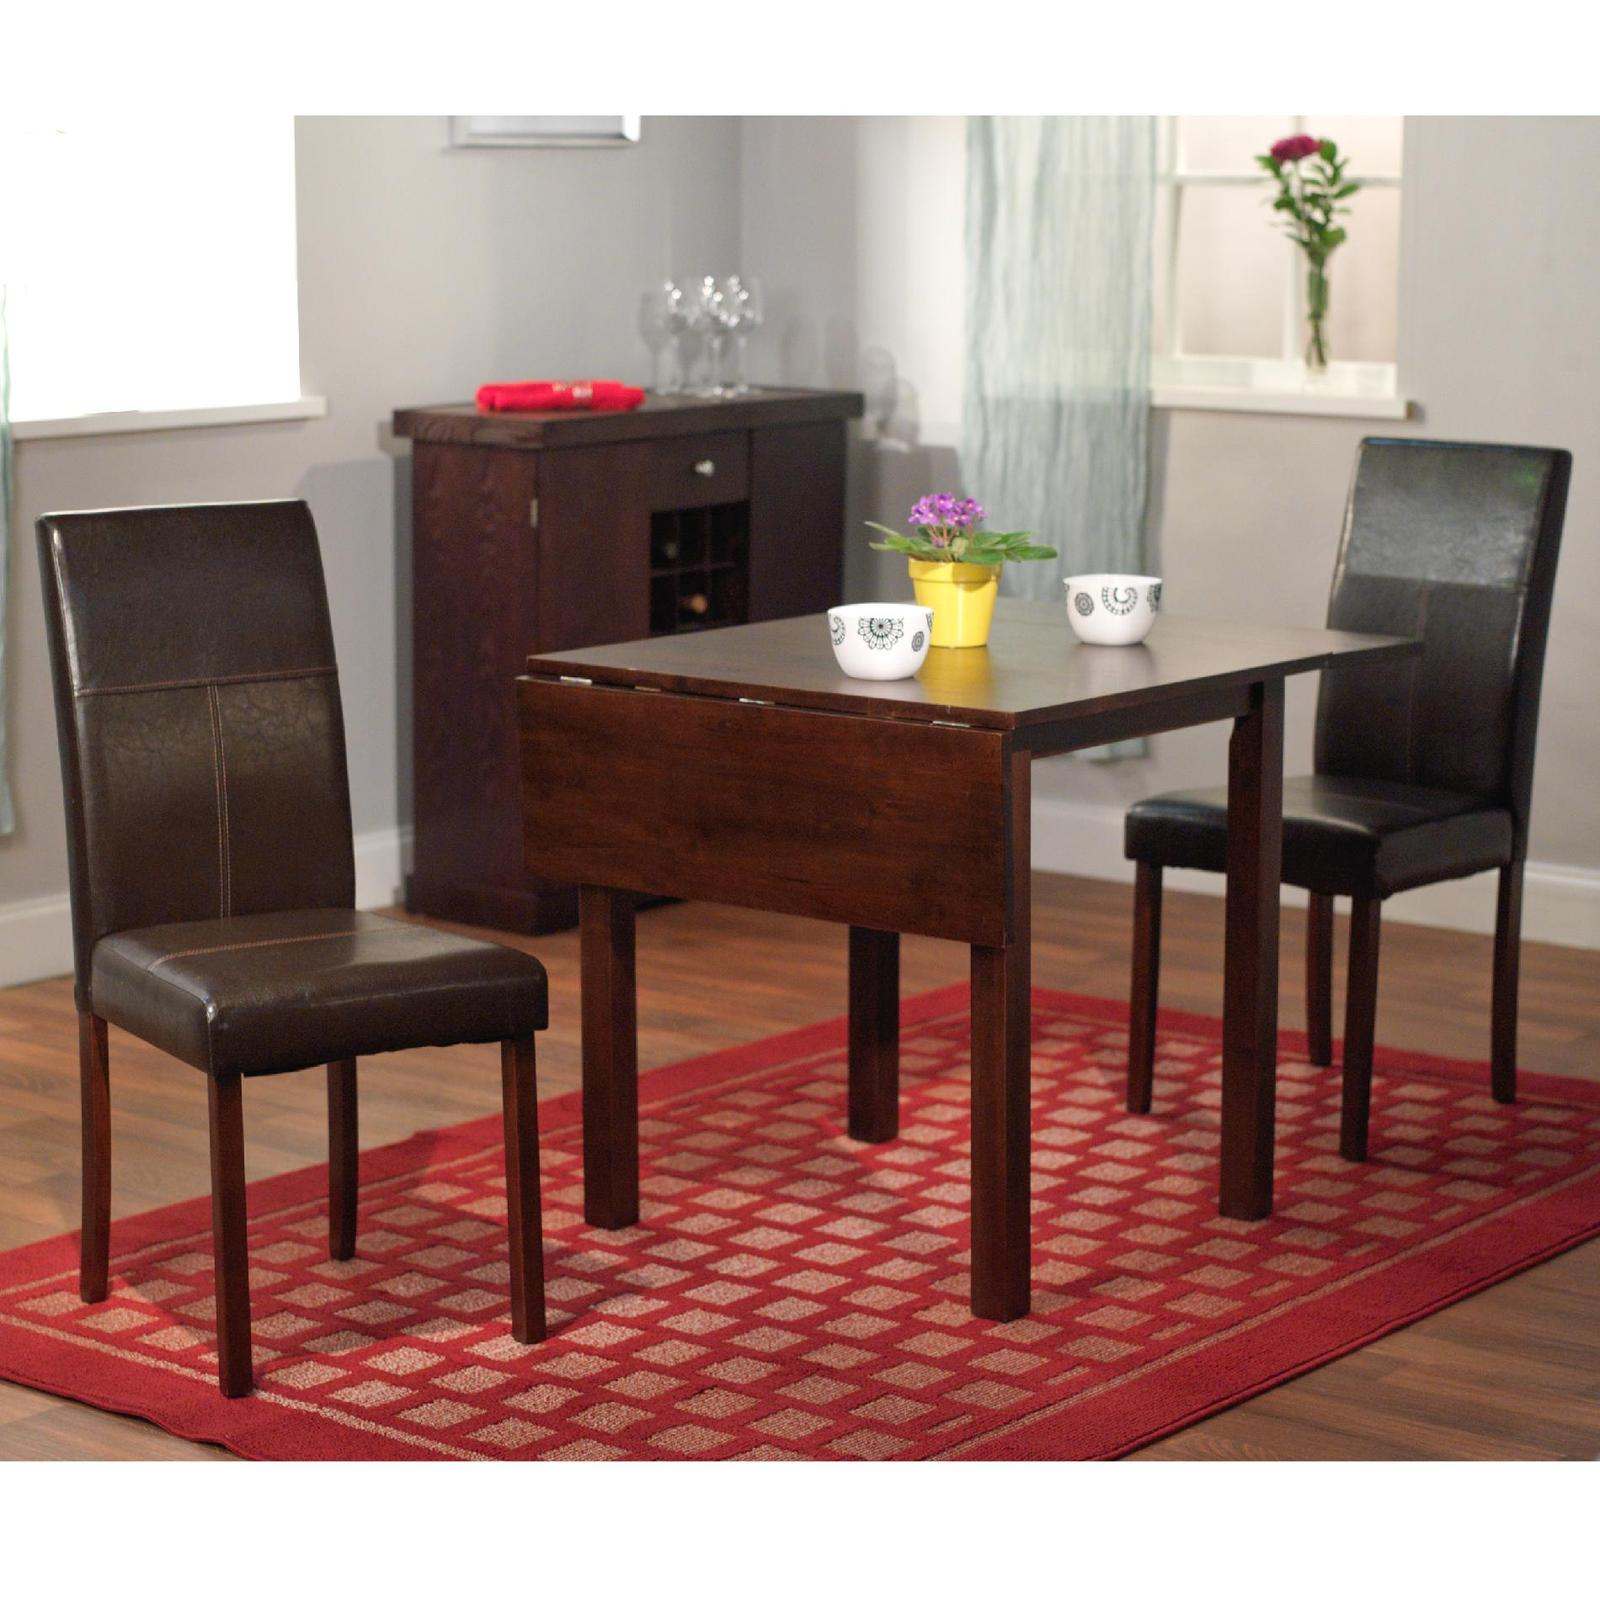 dining room set wooden furniture 3 piece drop leaf table